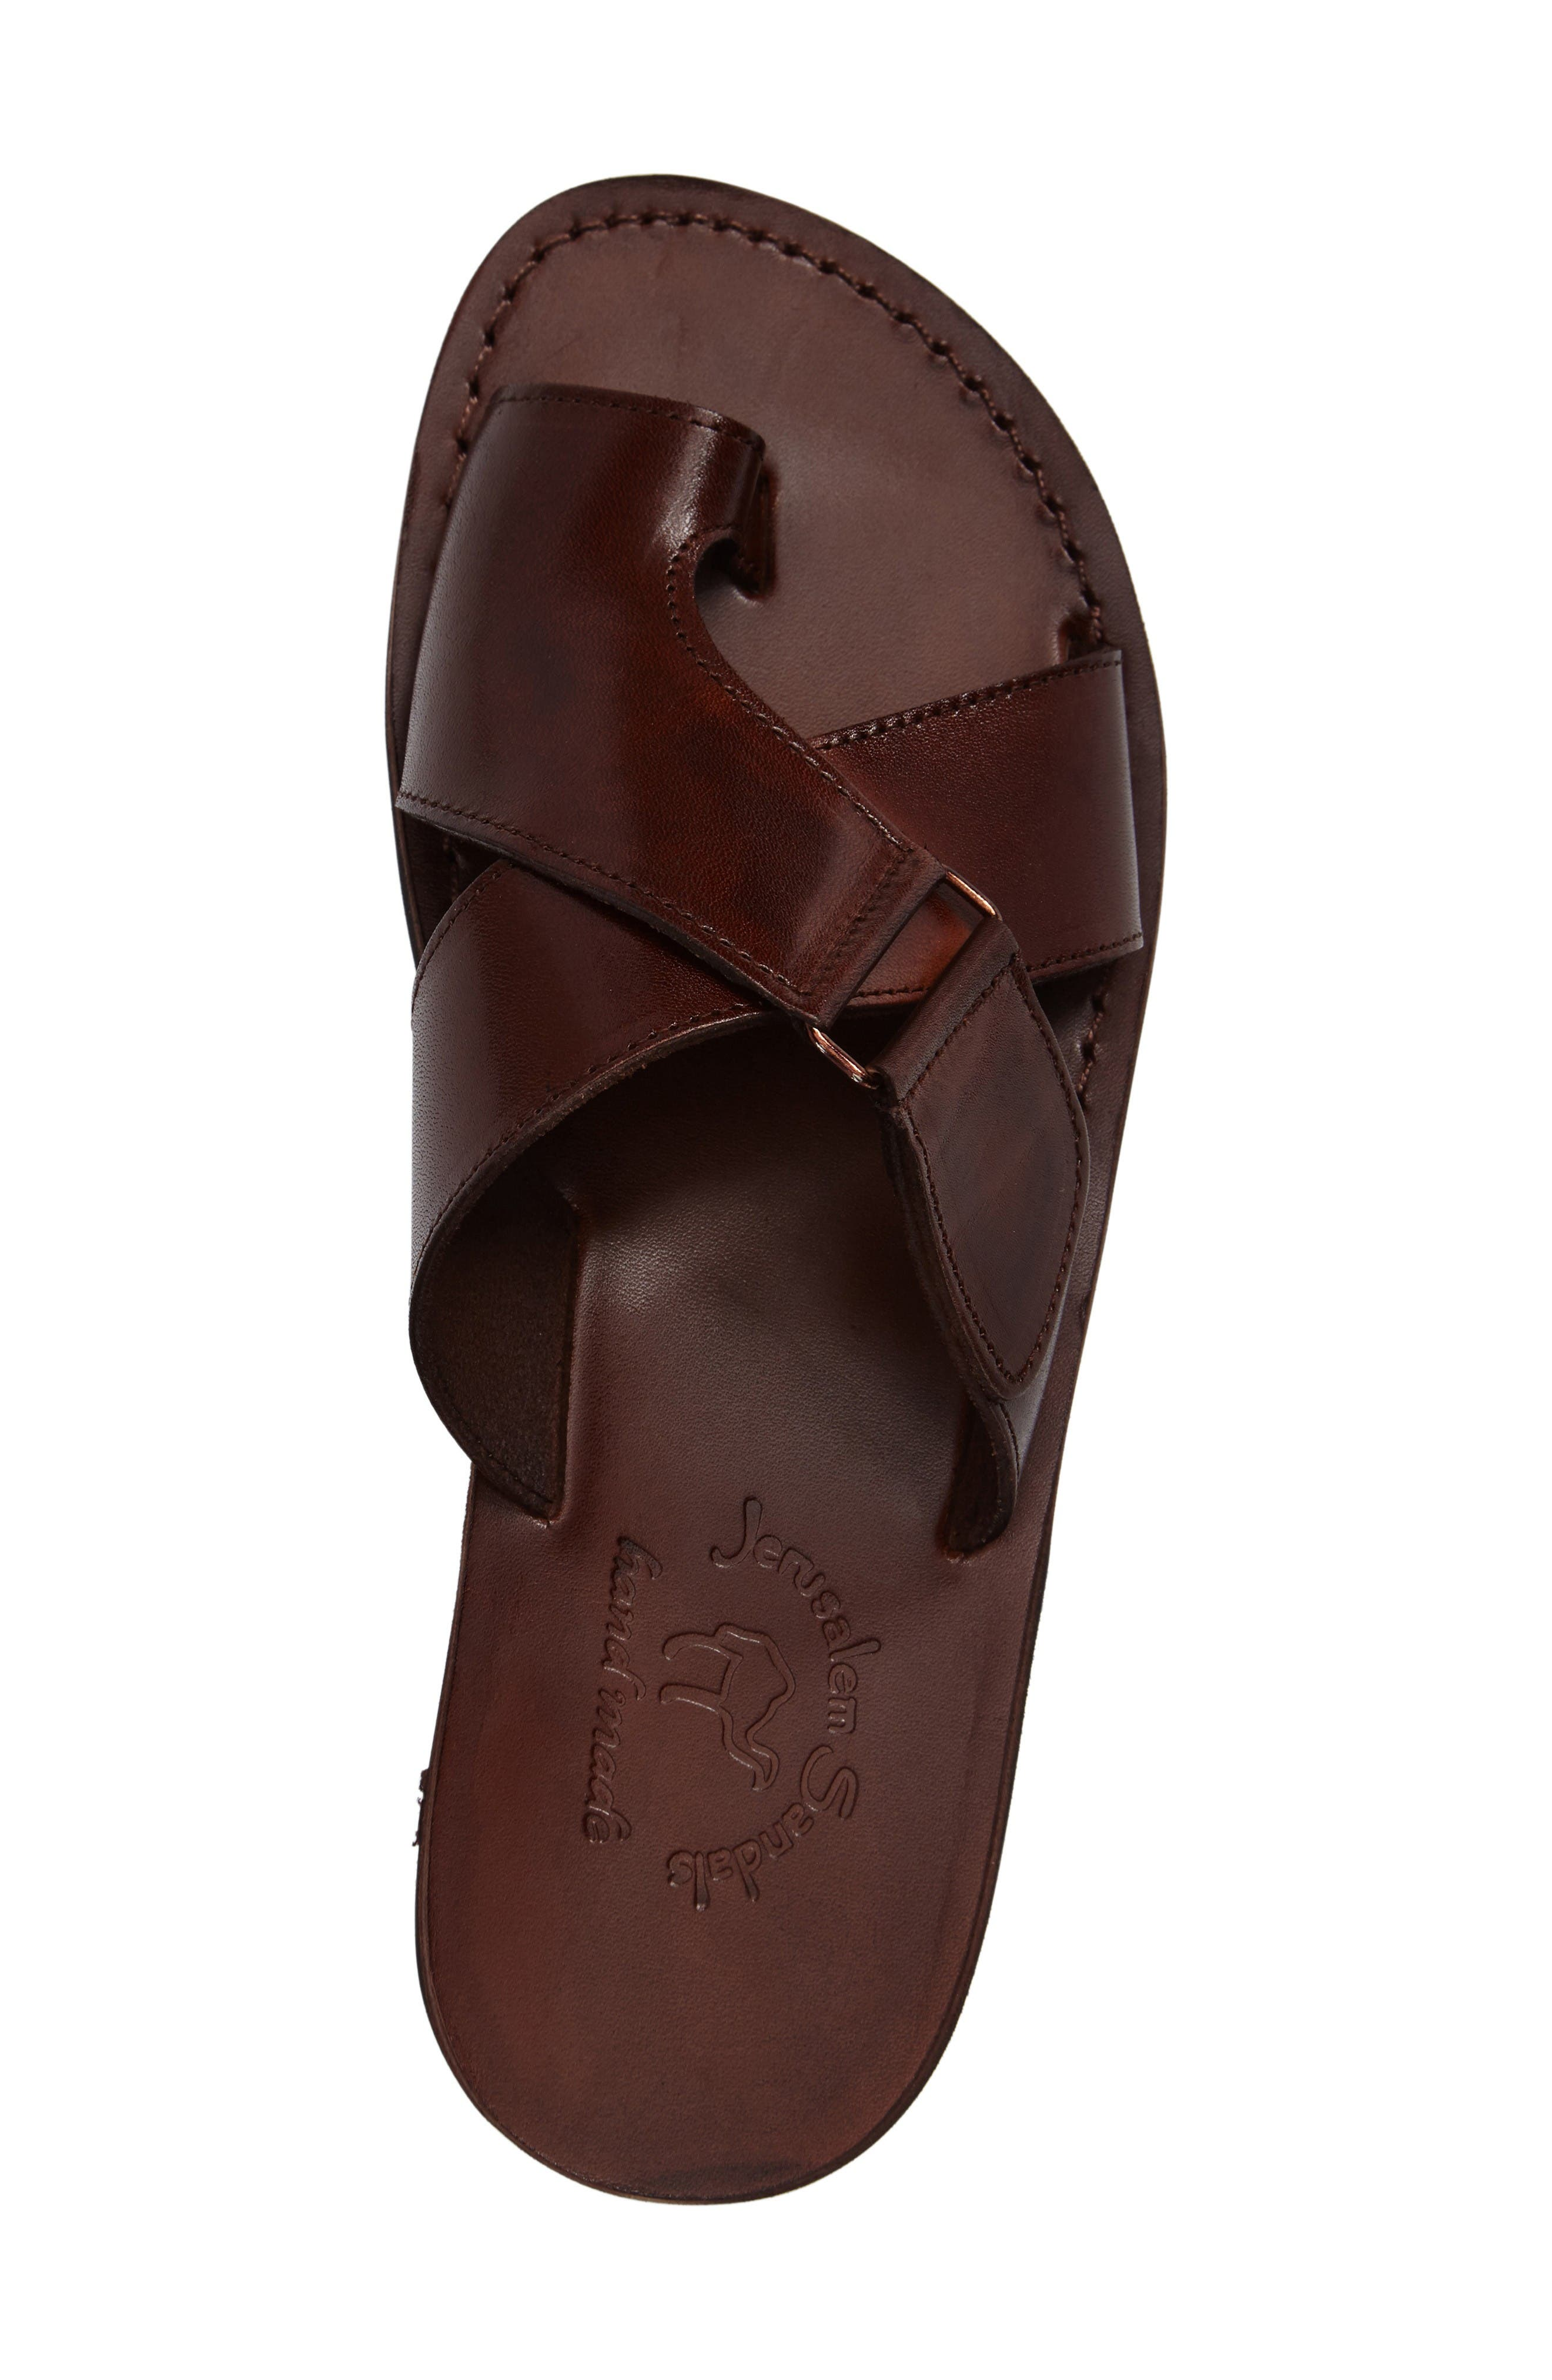 Asher Slide Sandal,                             Alternate thumbnail 3, color,                             Brown Leather